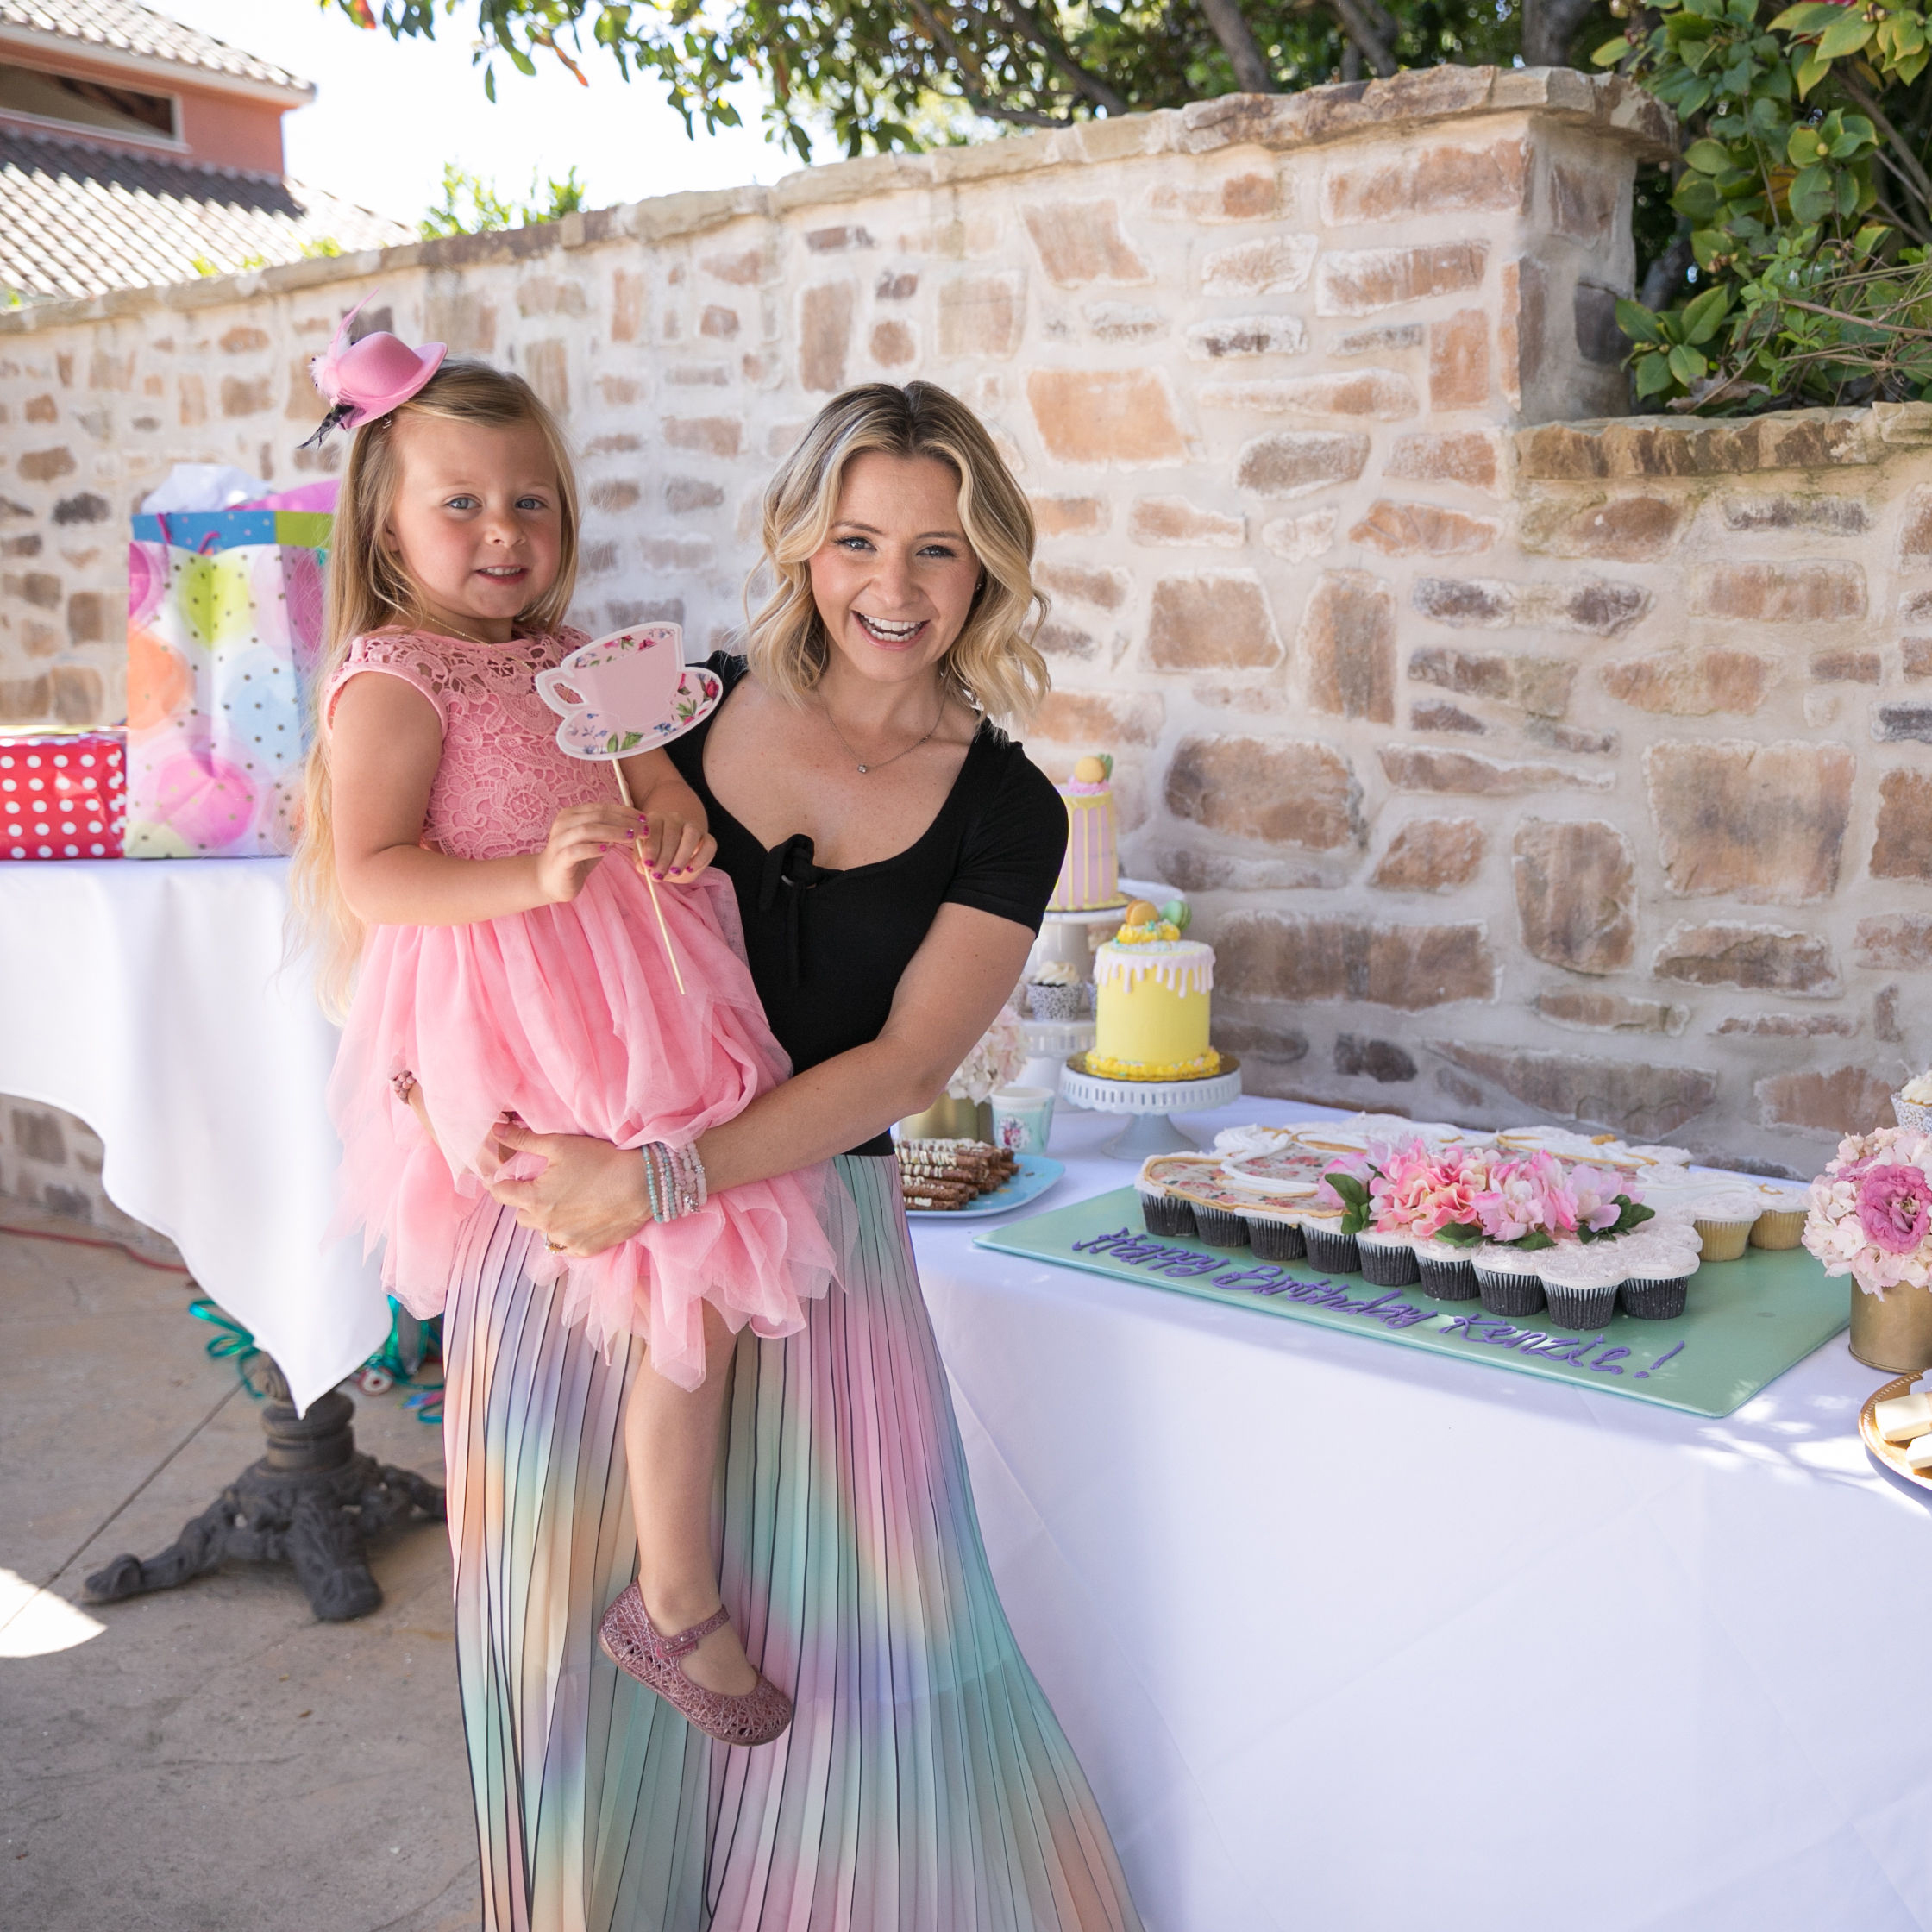 Actress Beverley Mitchell Reveals How She Threw Her Daughter the Perfect Birthday Tea Party